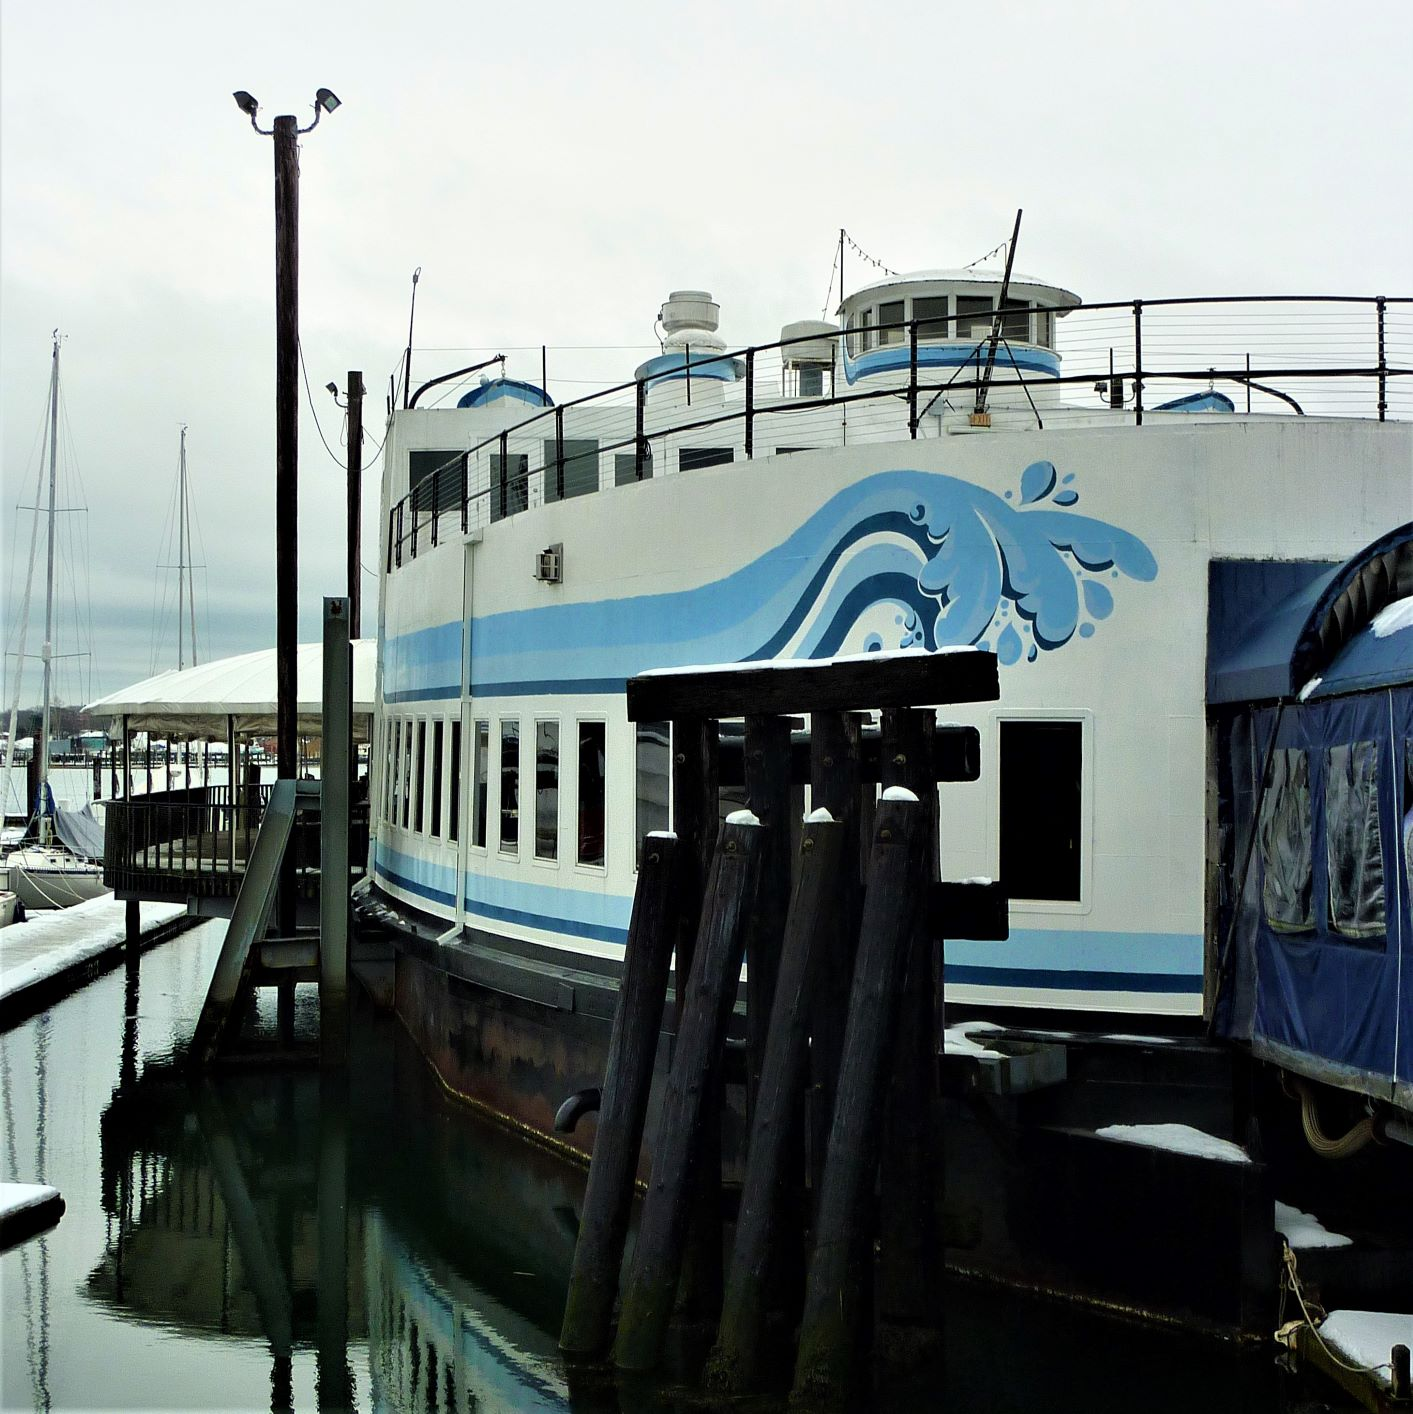 DiMillo's On the Water is located on a converted car ferry at the Portland, ME waterfront.